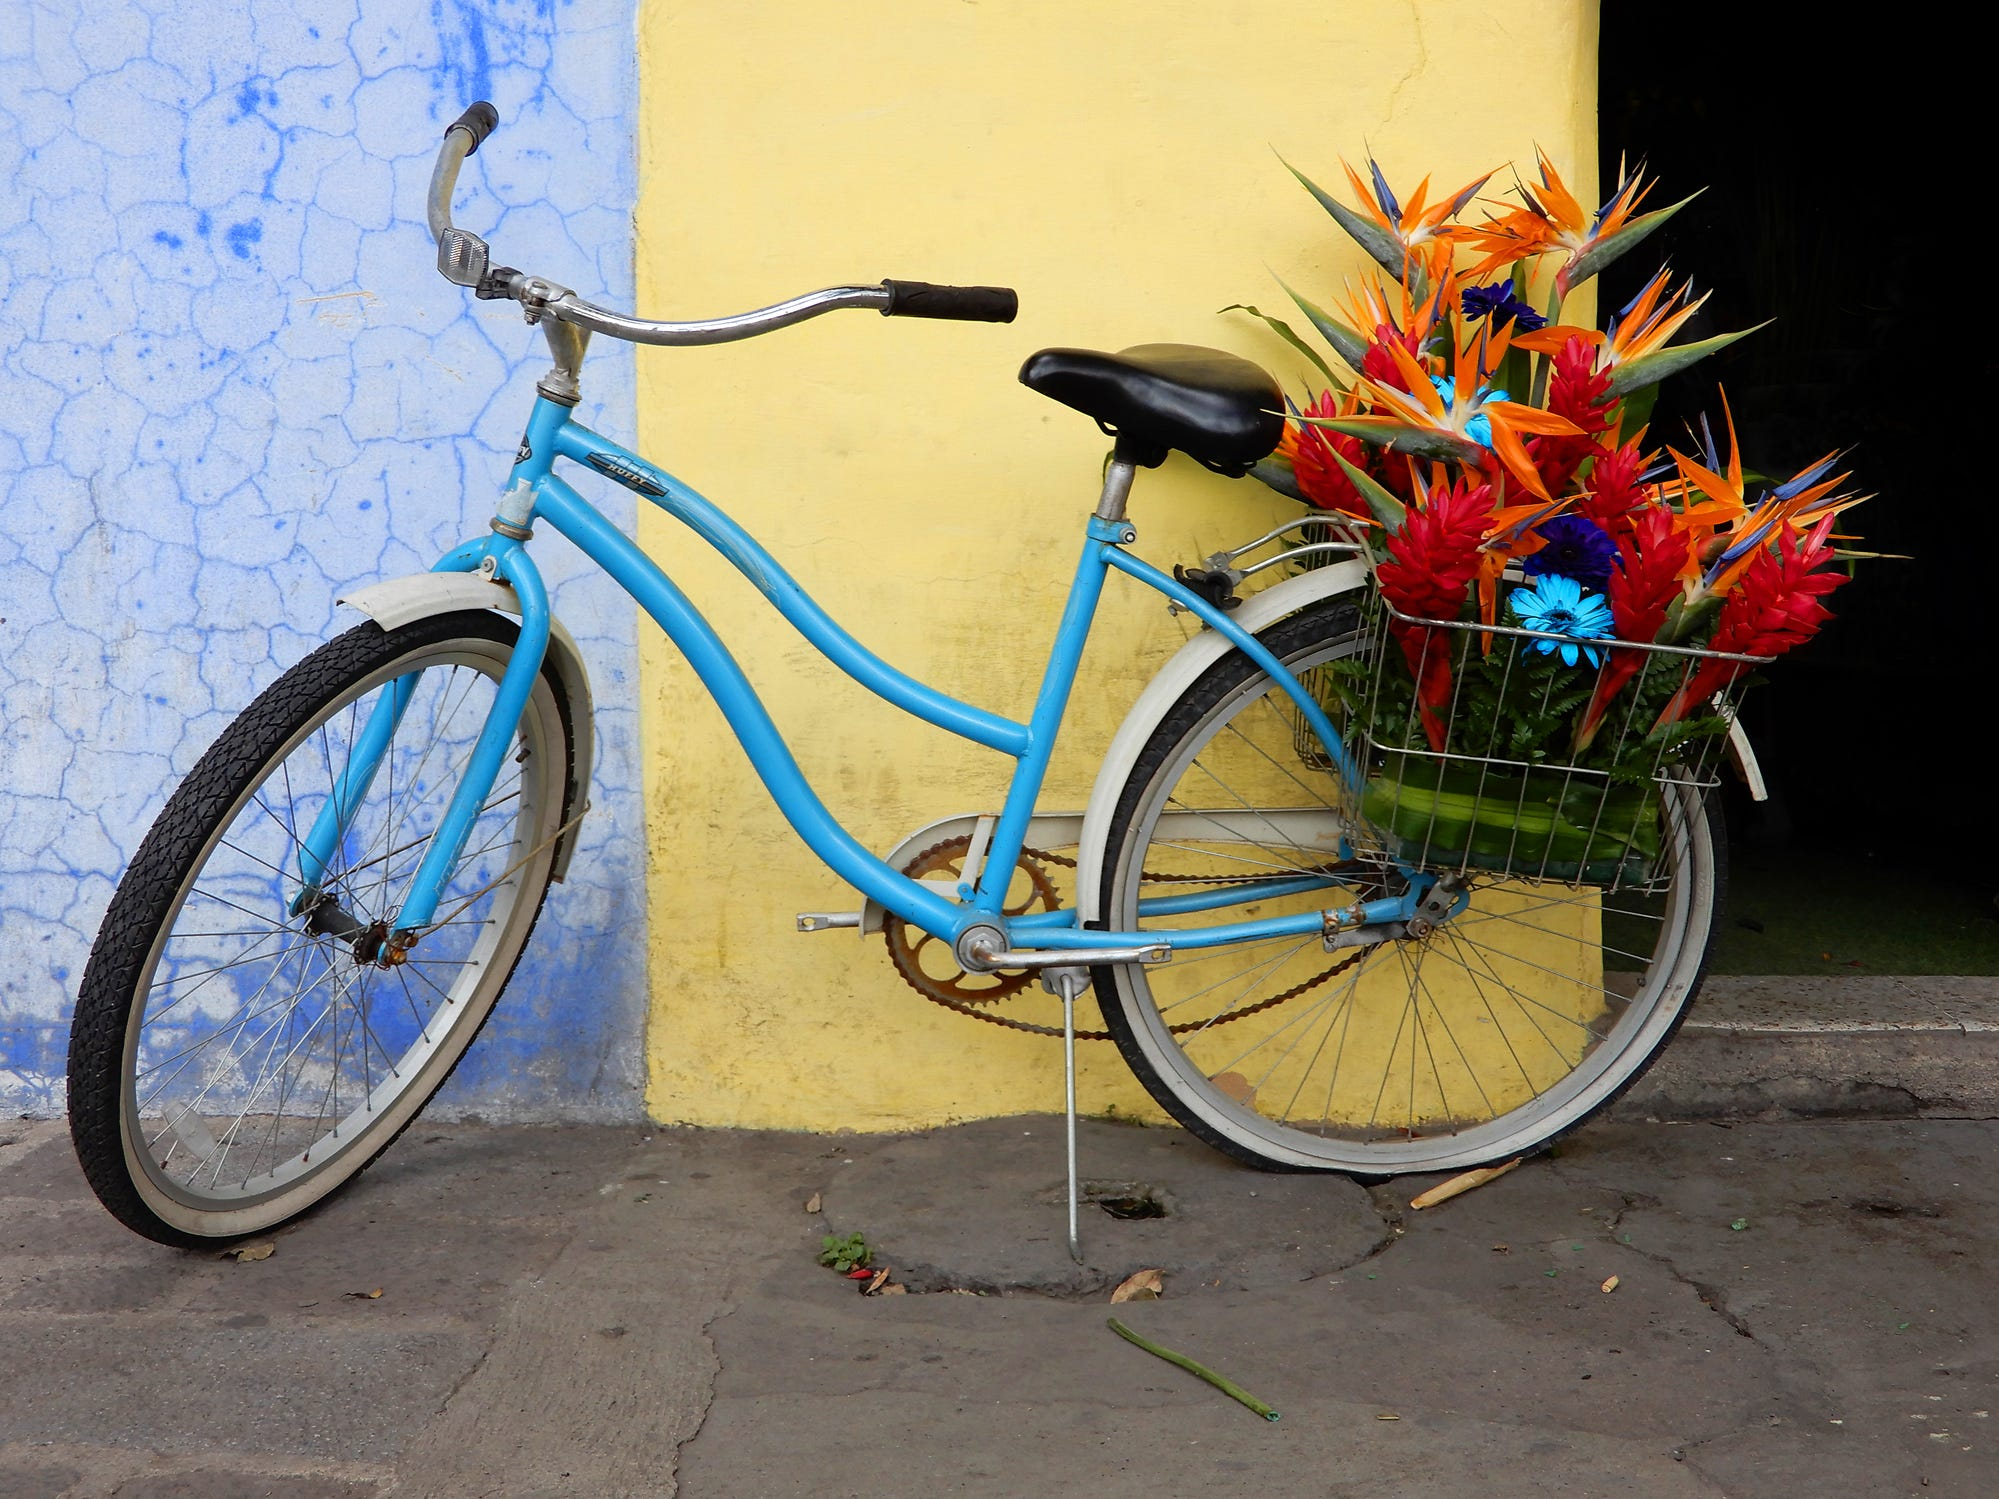 Bicycle with flowers Antigua, Guatemala.